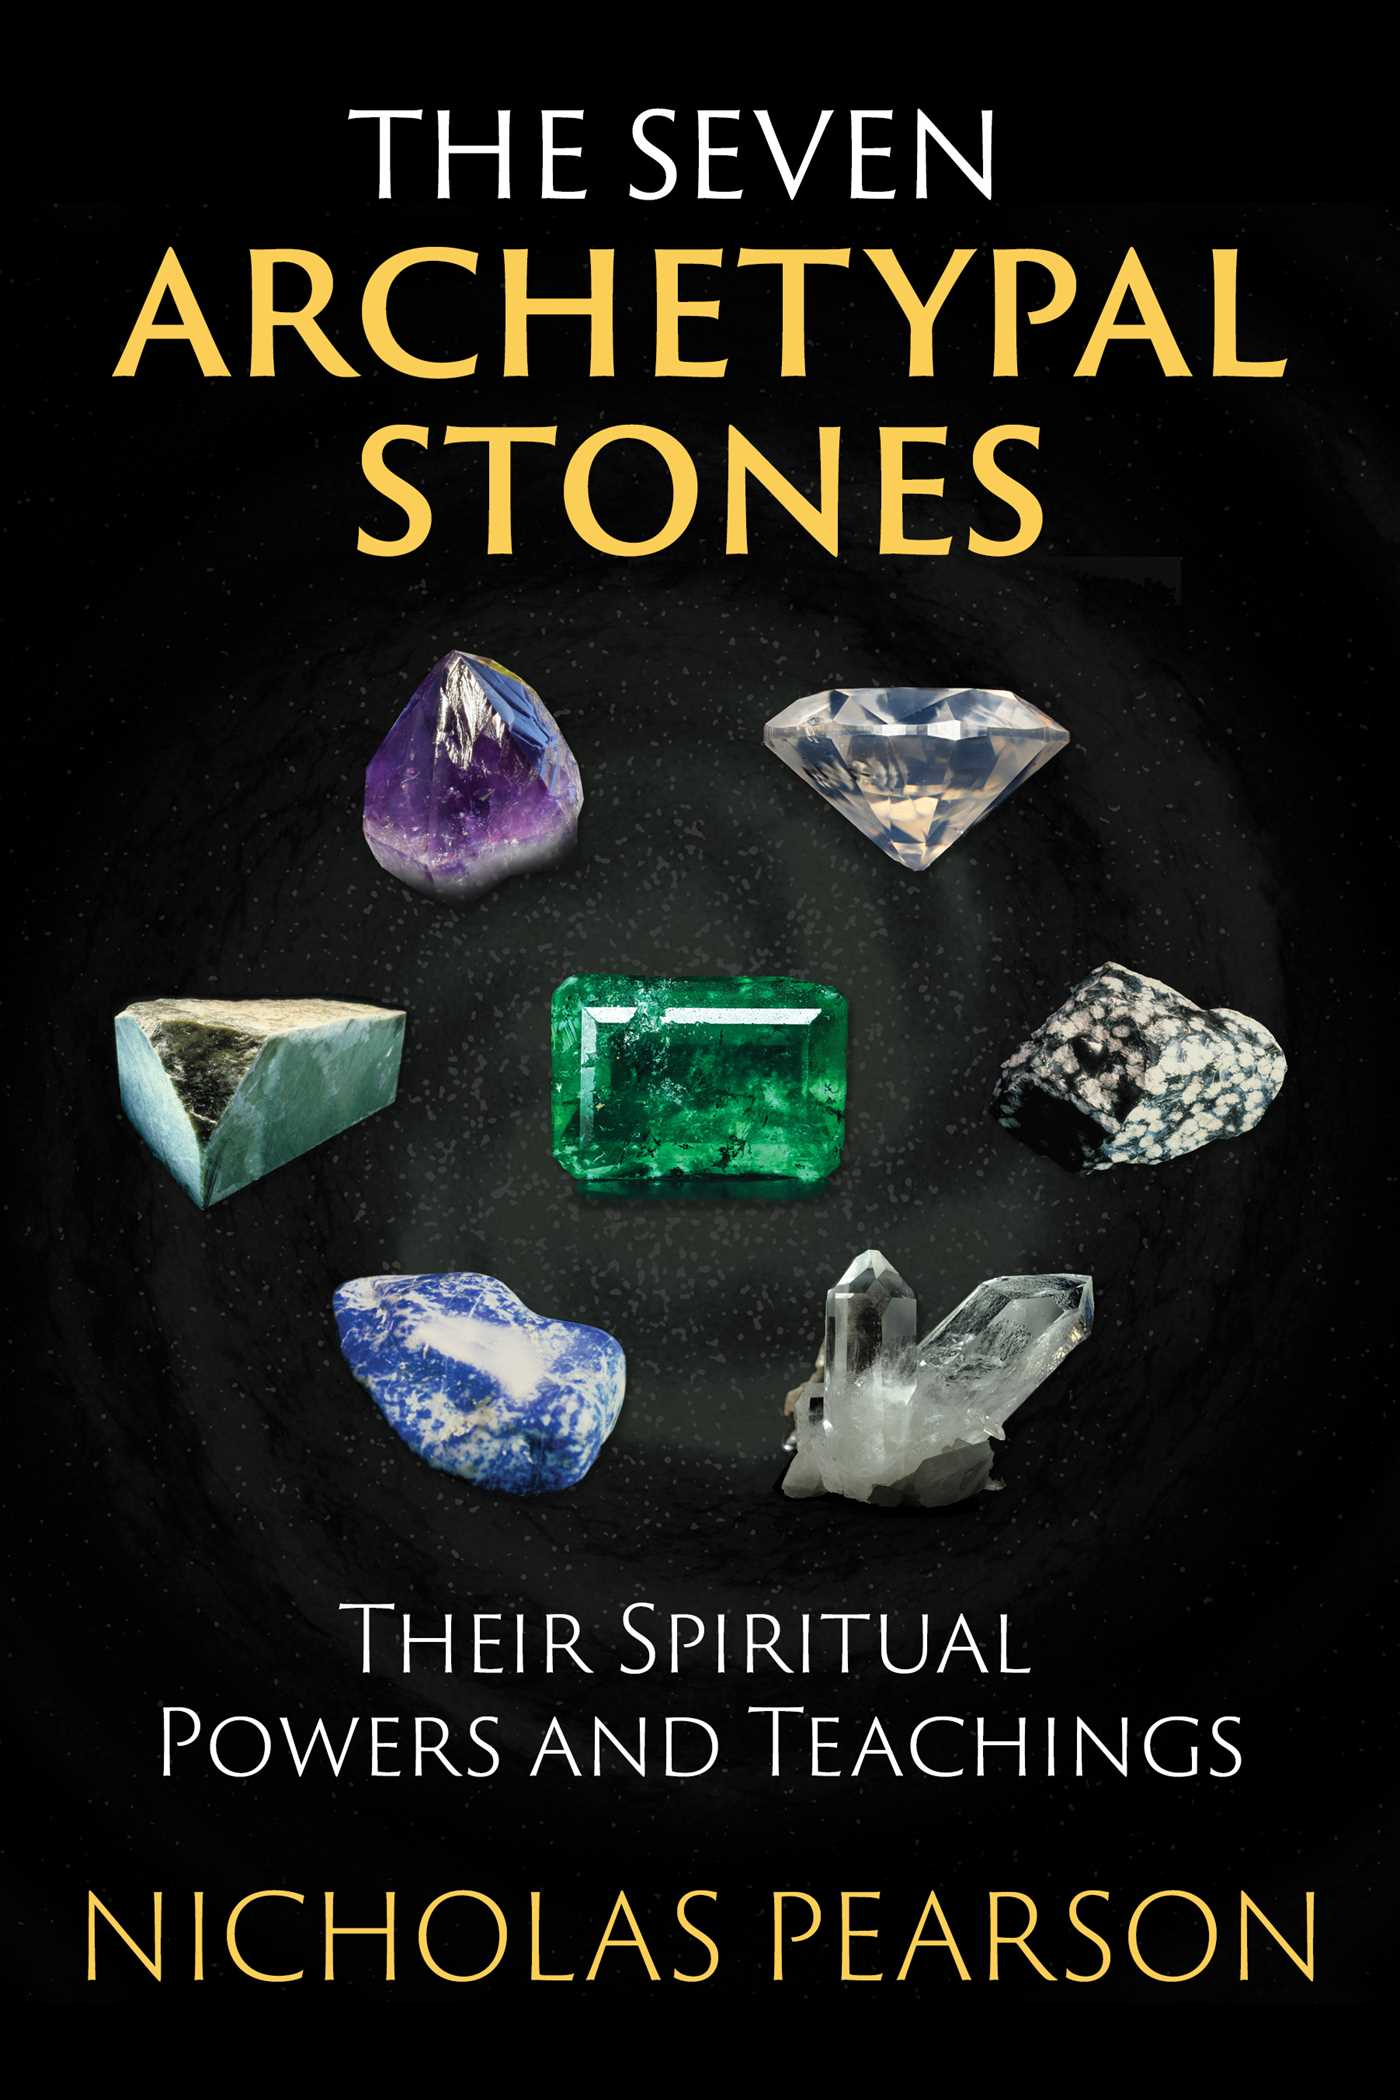 The seven archetypal stones book by nicholas pearson official book cover image jpg the seven archetypal stones fandeluxe Gallery